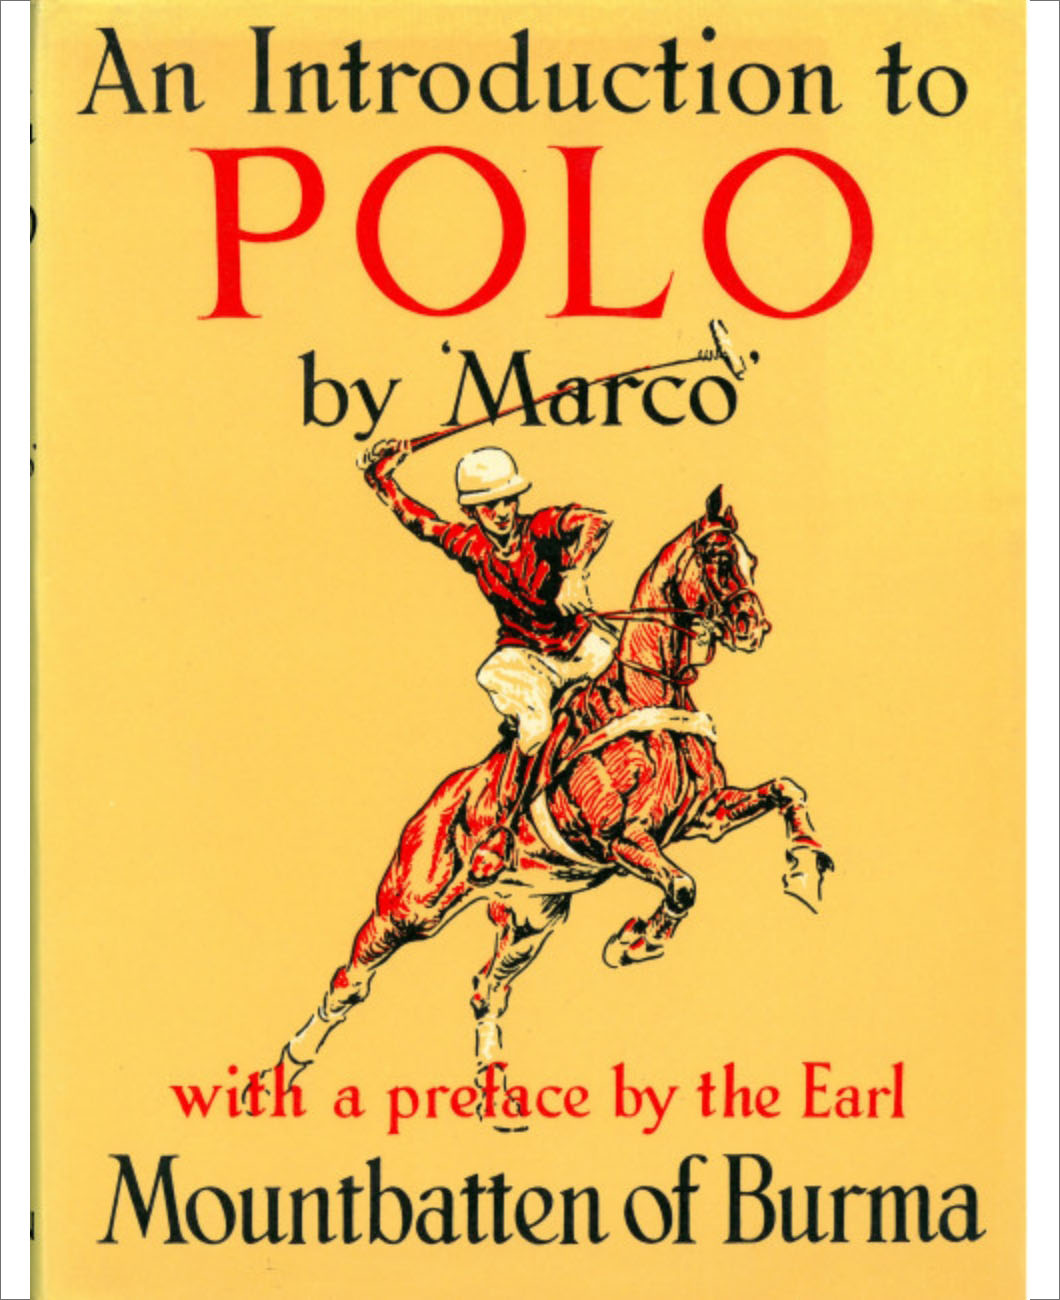 louis-mountbatten-an-introduction-to-polo-and-india-la-polo